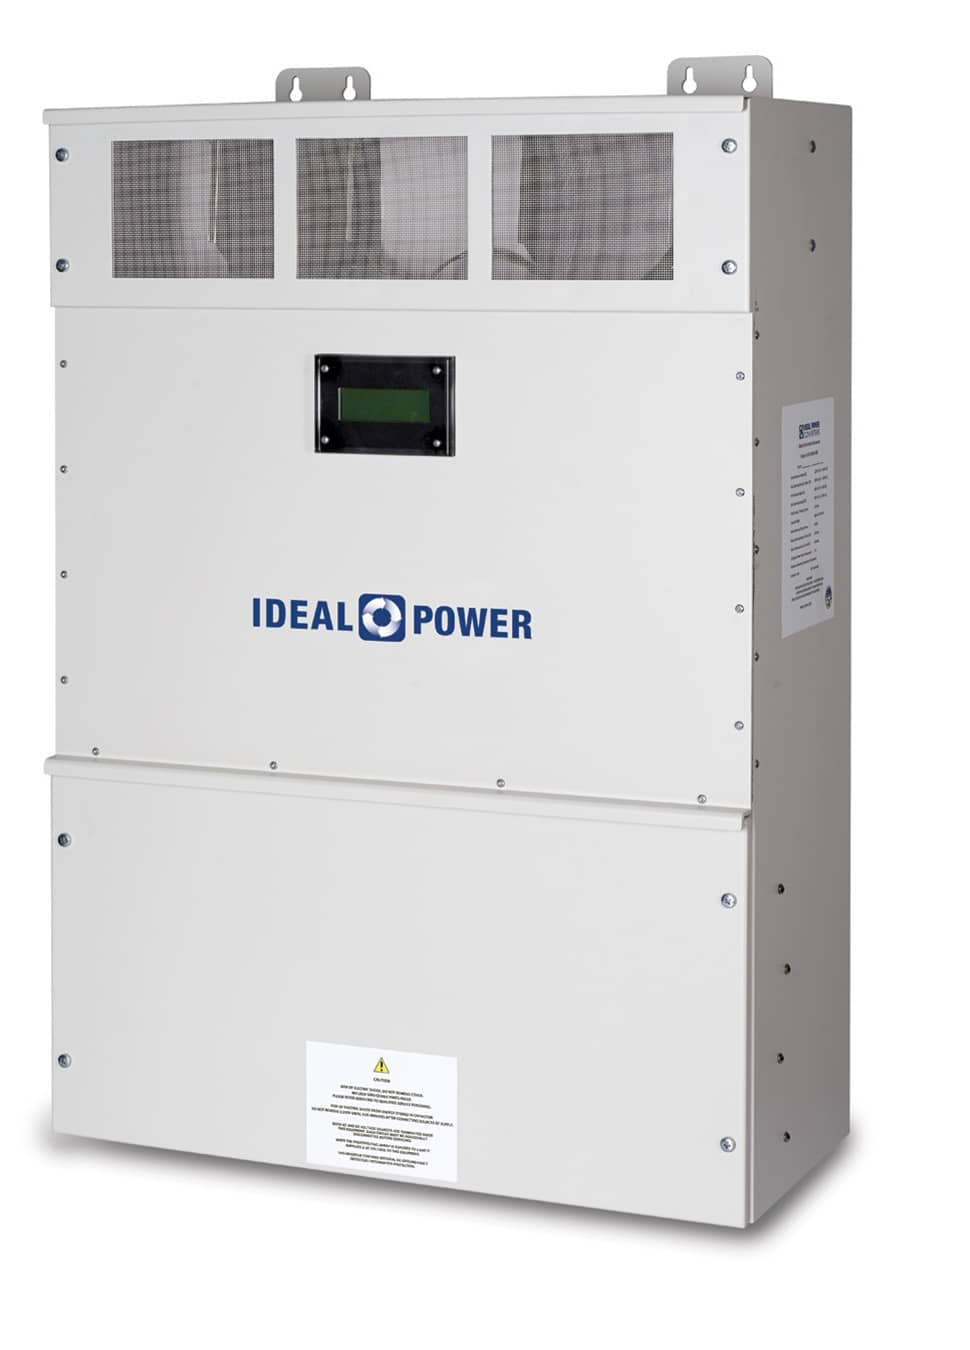 ideal Ideal Power Inks Distribution Deal With WESCO International